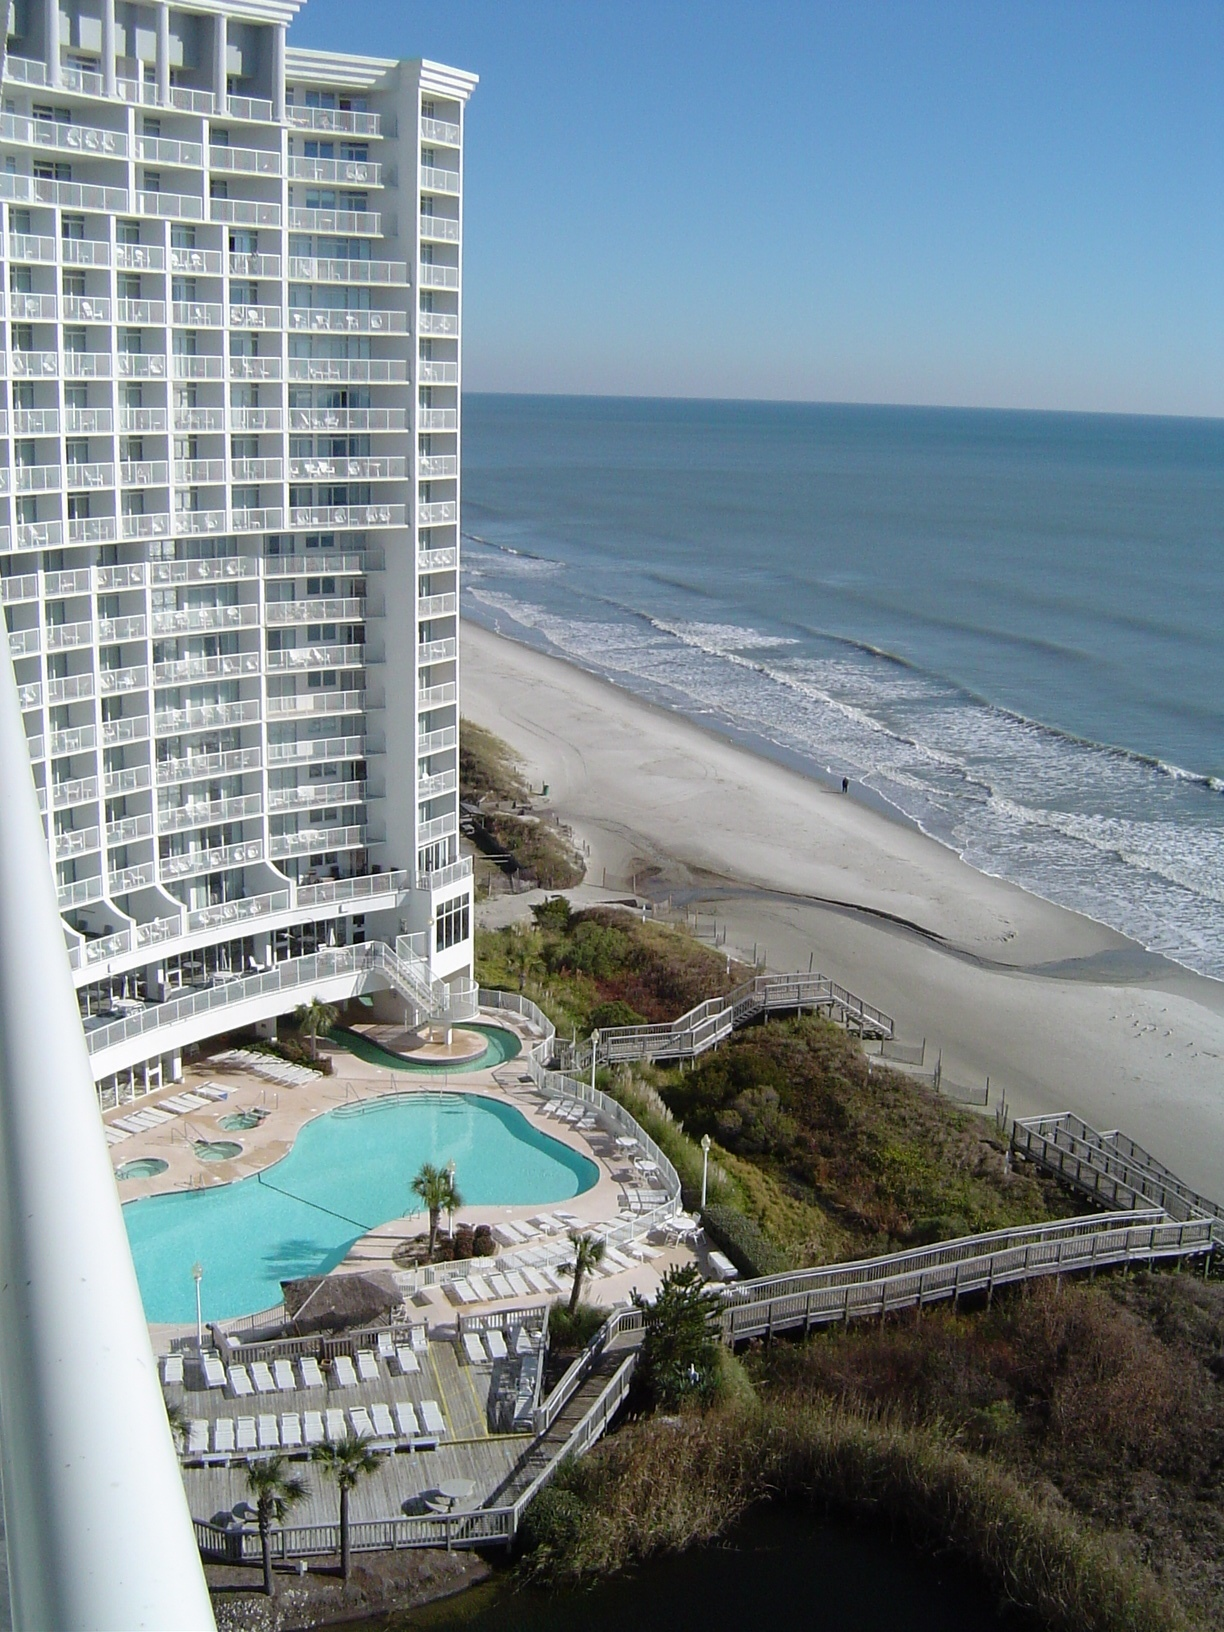 Wyndham Sea Plantation Myrtle Beach